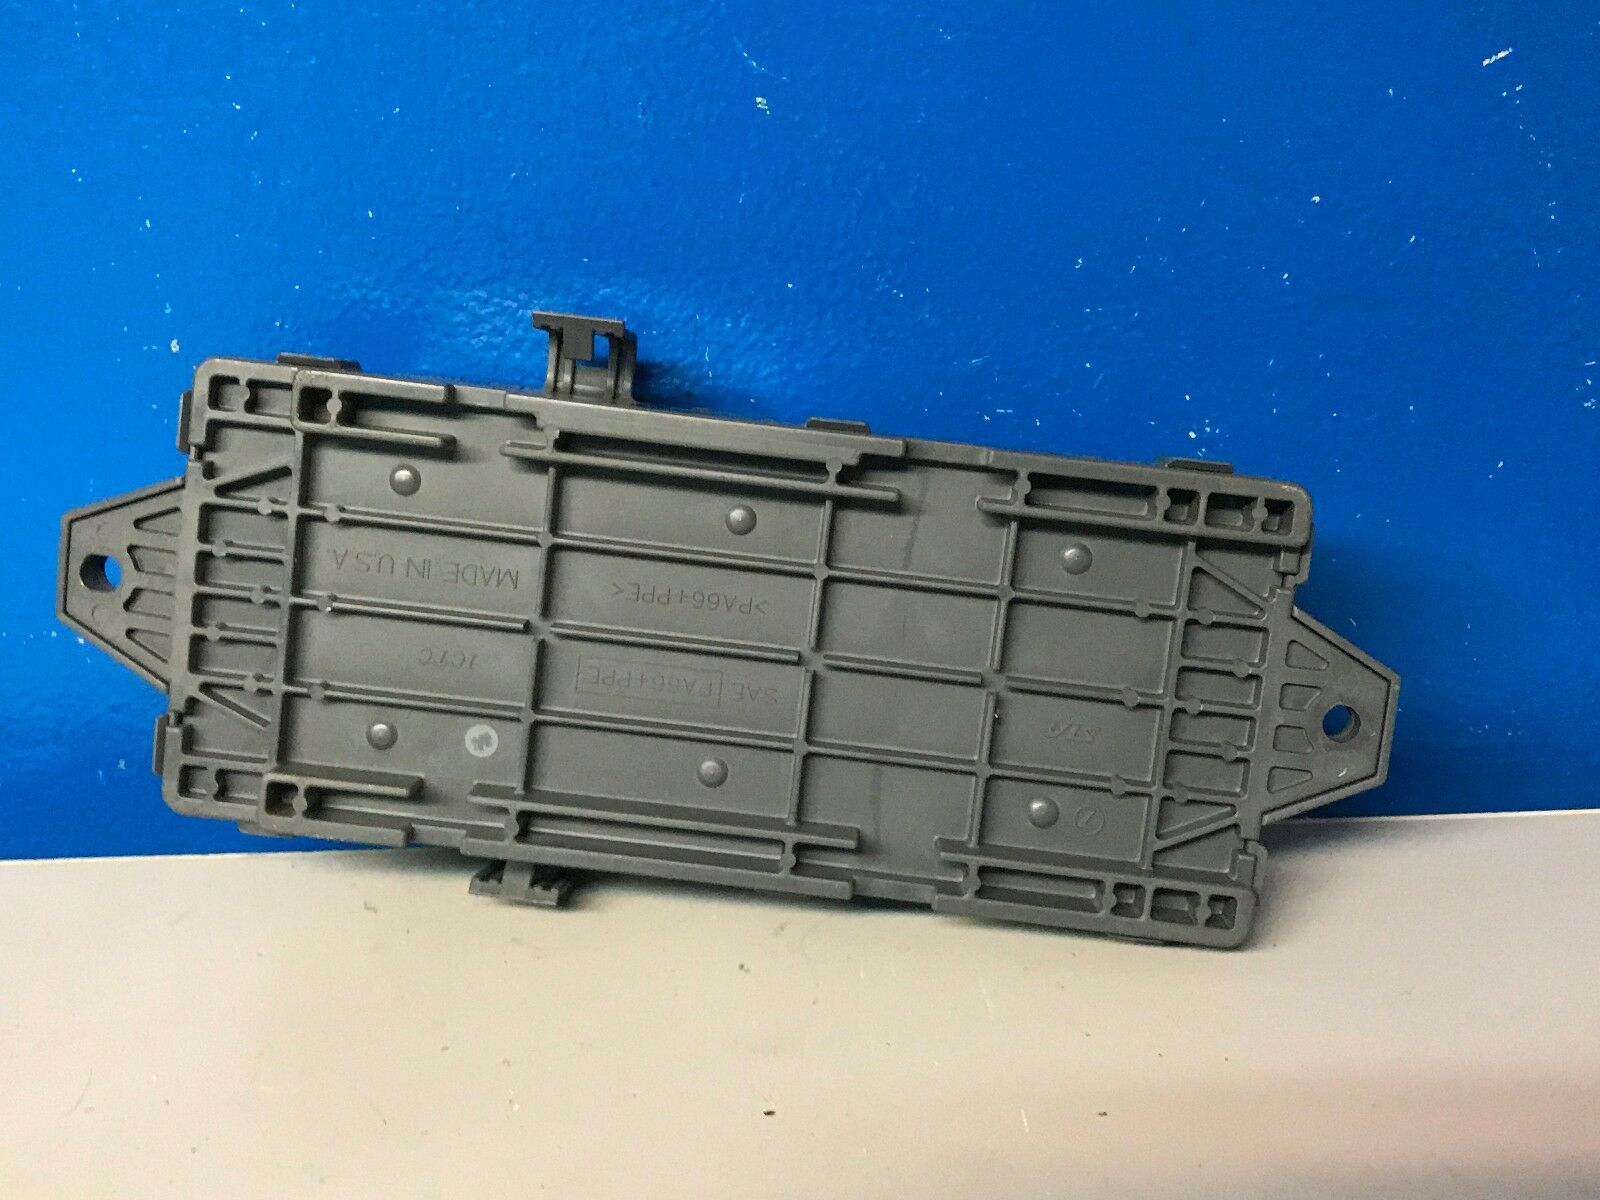 Used 1996 Subaru Legacy Computers Chips Cruise Control And Related 1998 Fuse Box 1995 Outback Interior Panel Relay Oem